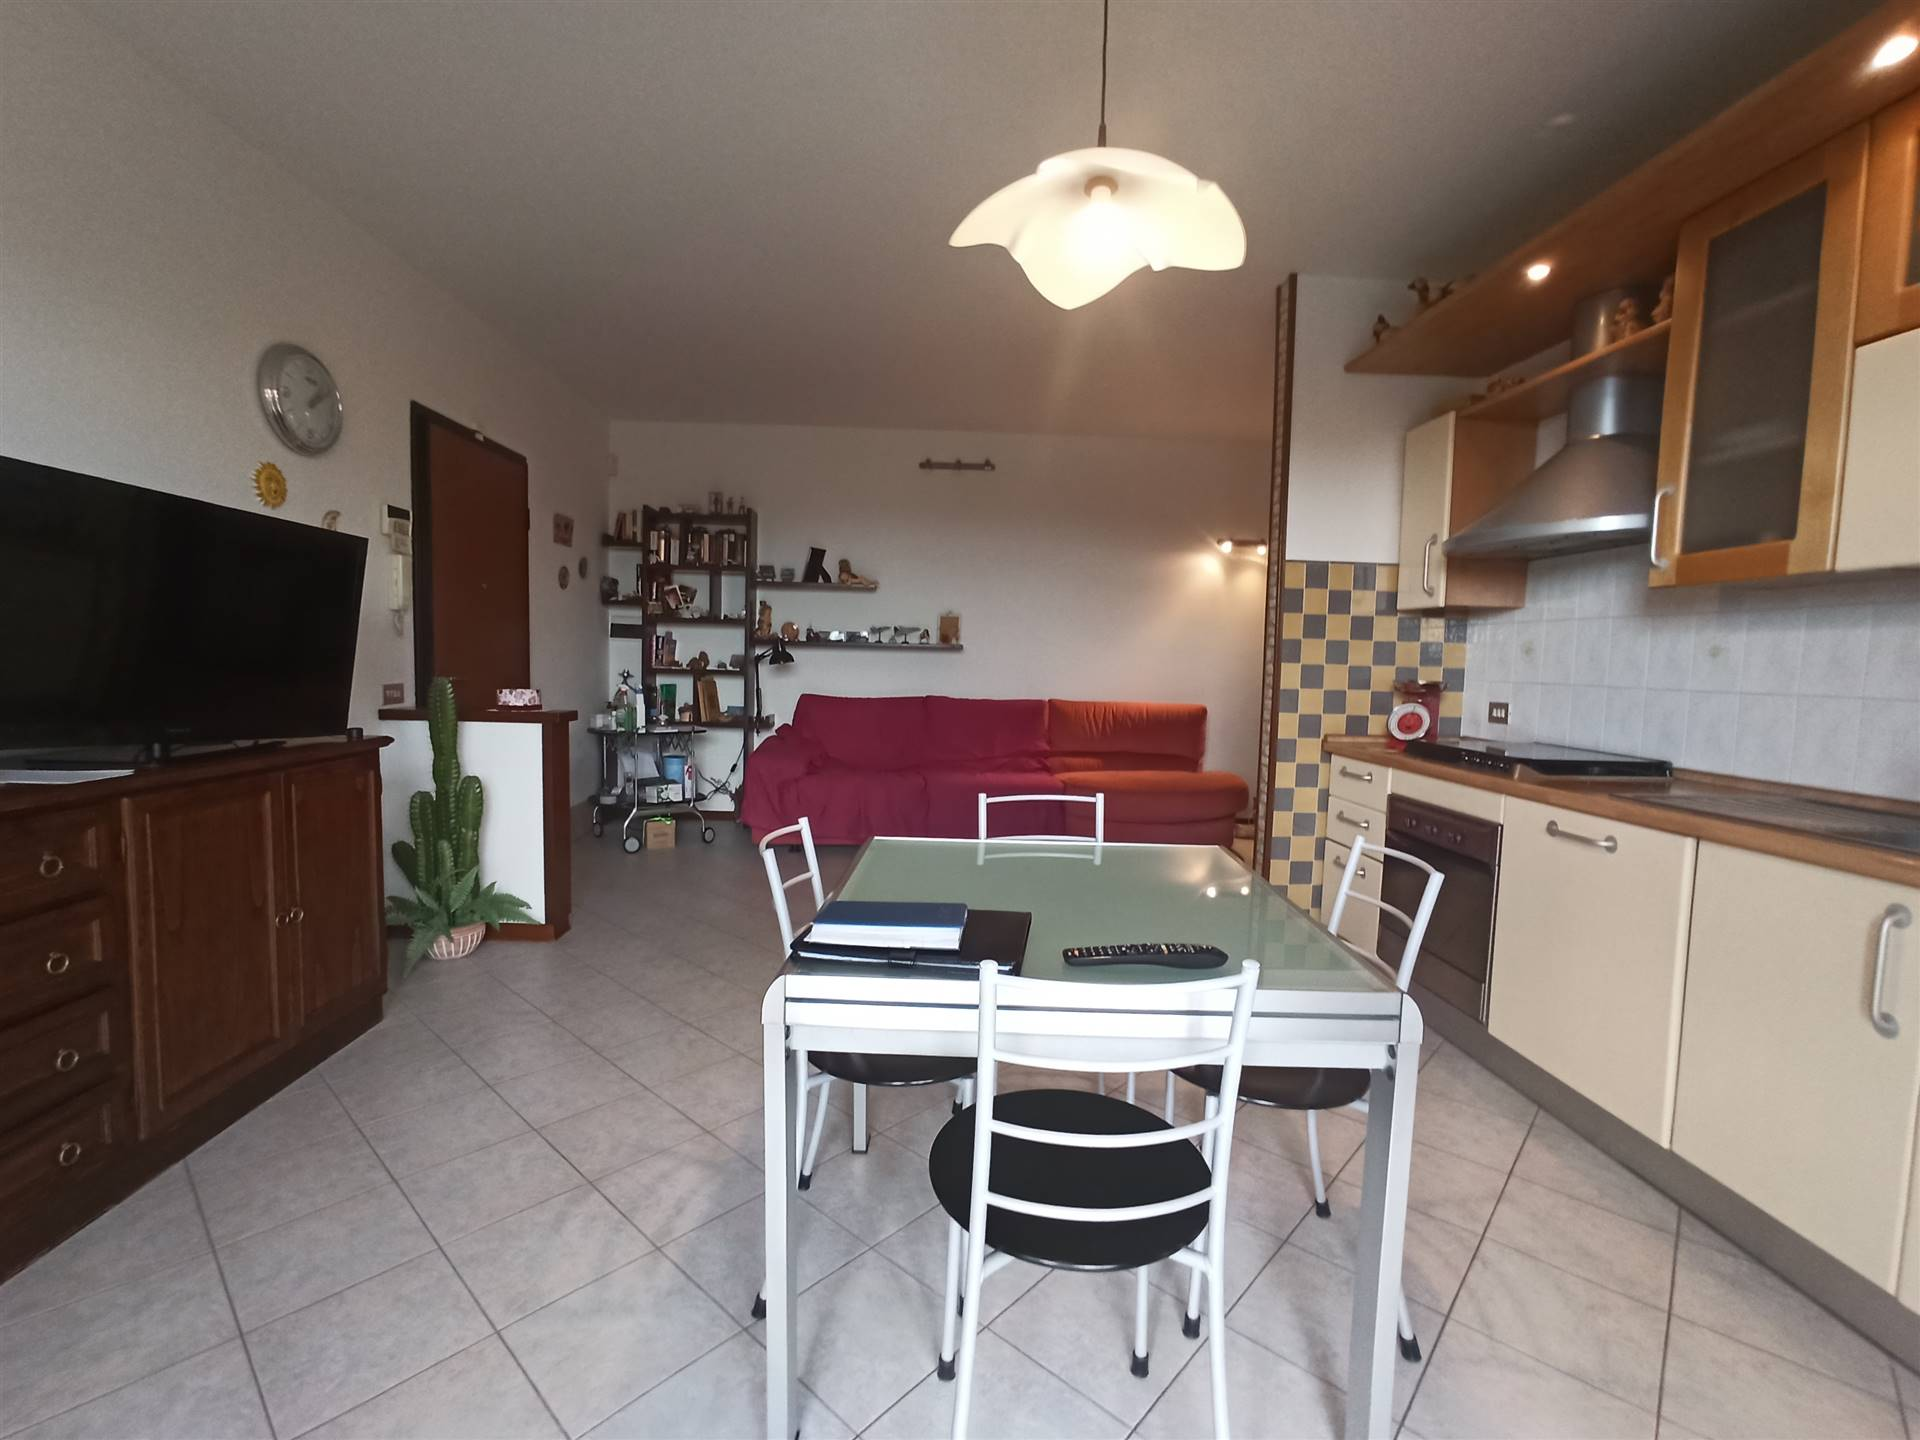 PAPERINO, PRATO, Apartment for sale, Excellent Condition, Heating Individual heating system, Energetic class: G, placed at 2° on 3, composed by: 3